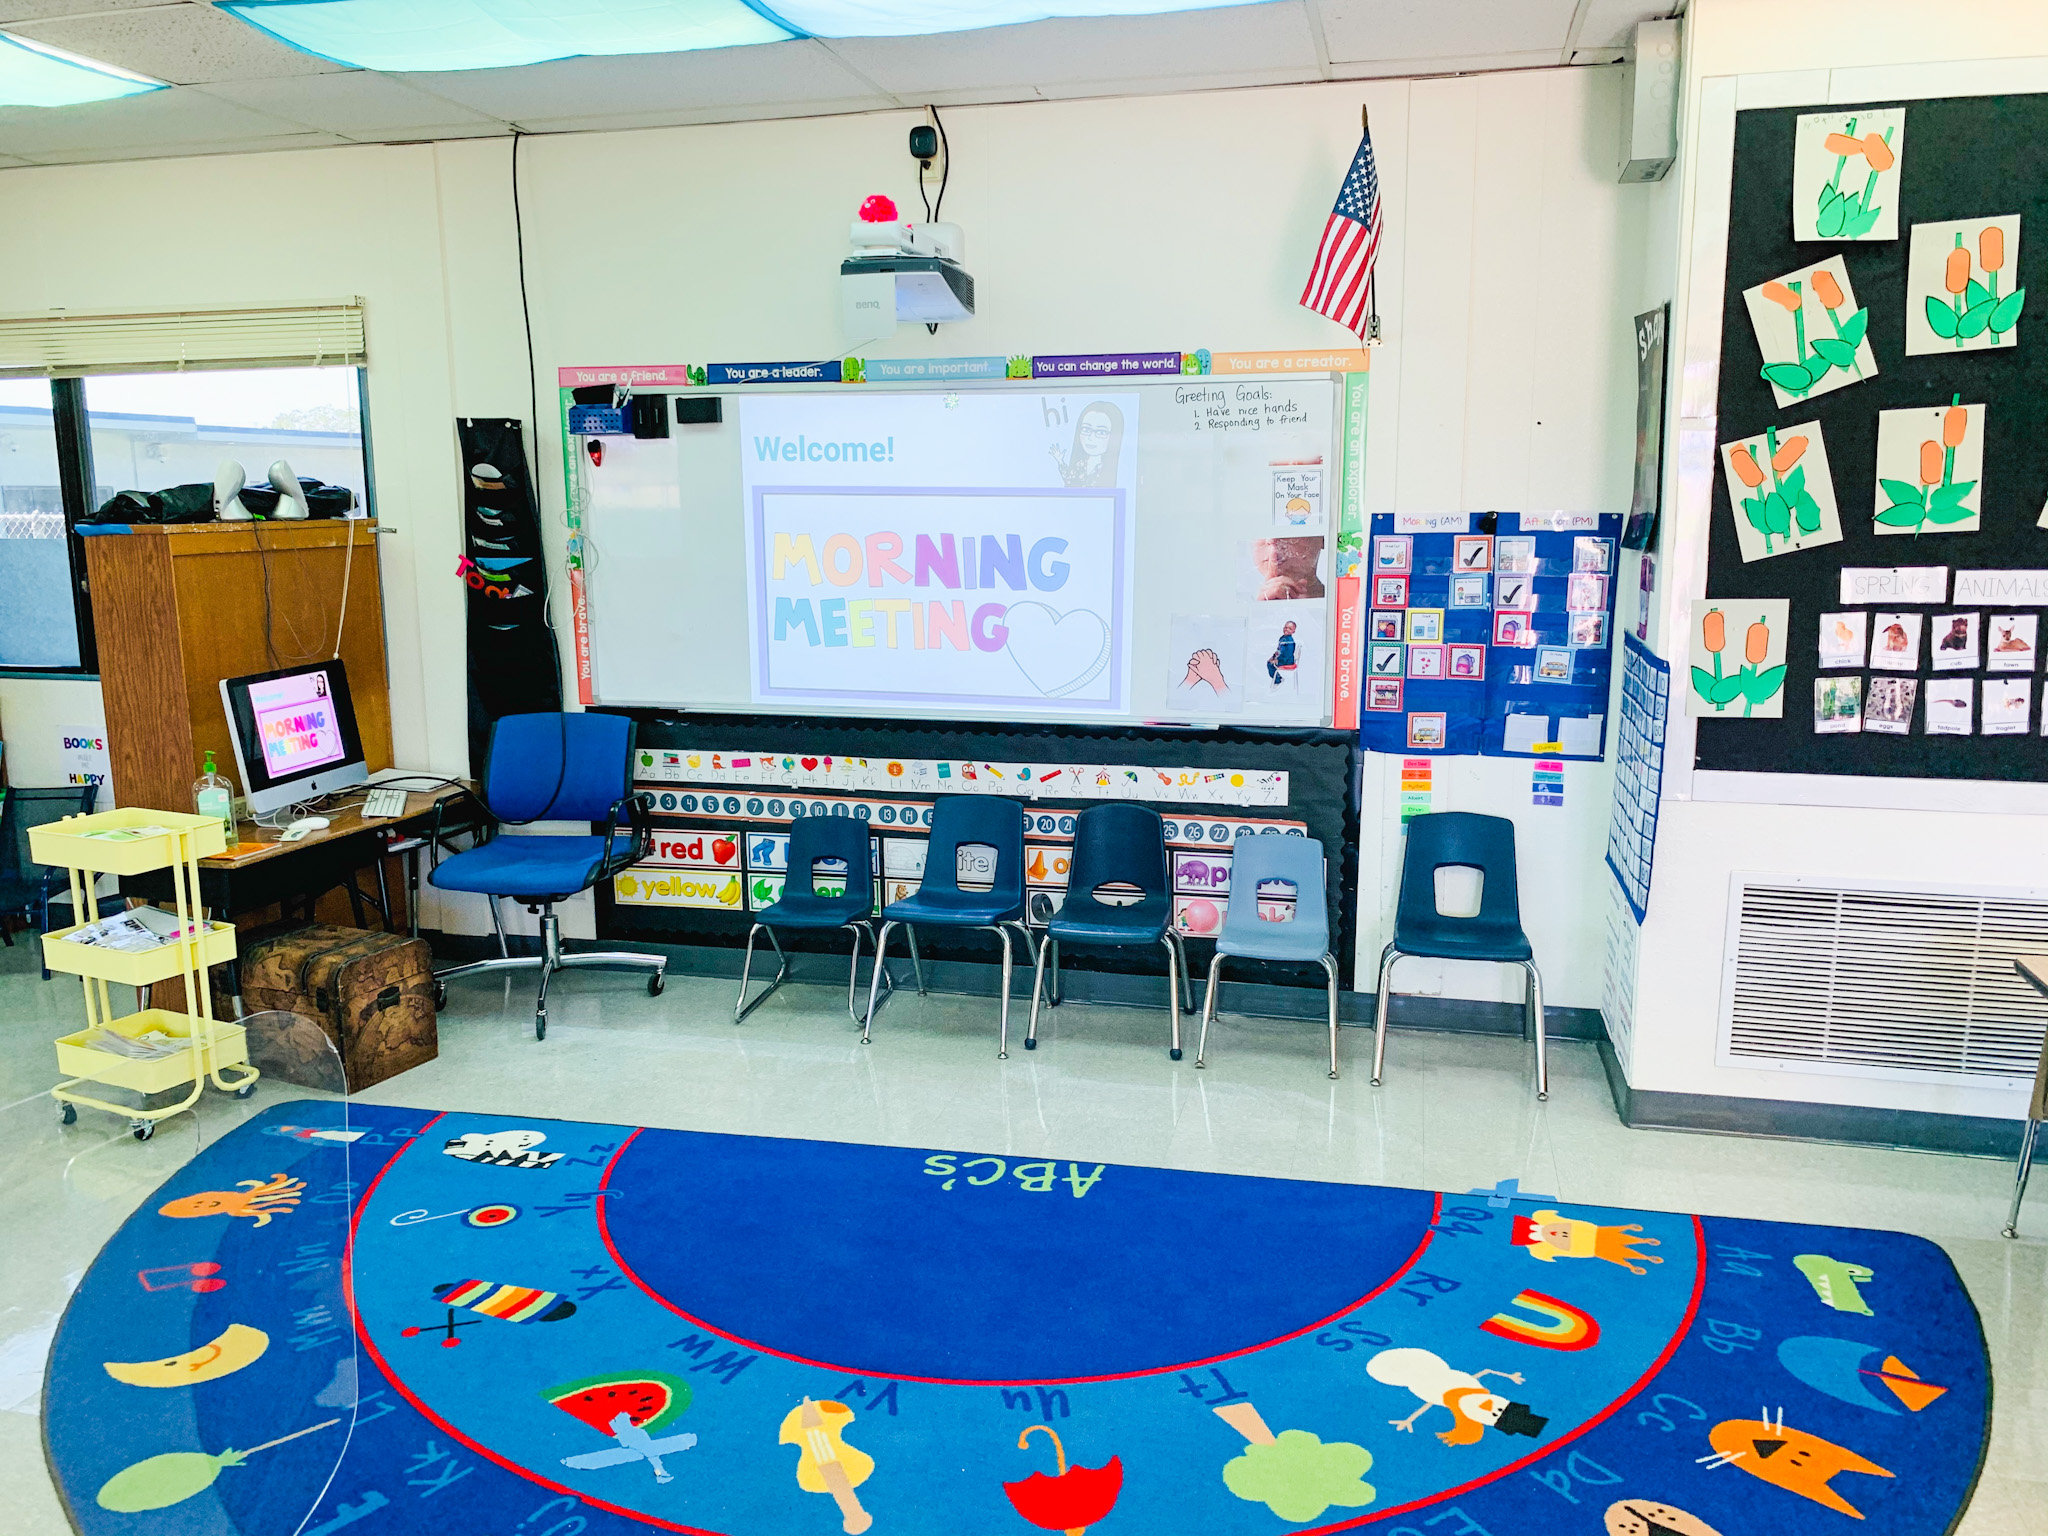 Here is our class hub where we have morning meeting and whole group throughout the day.